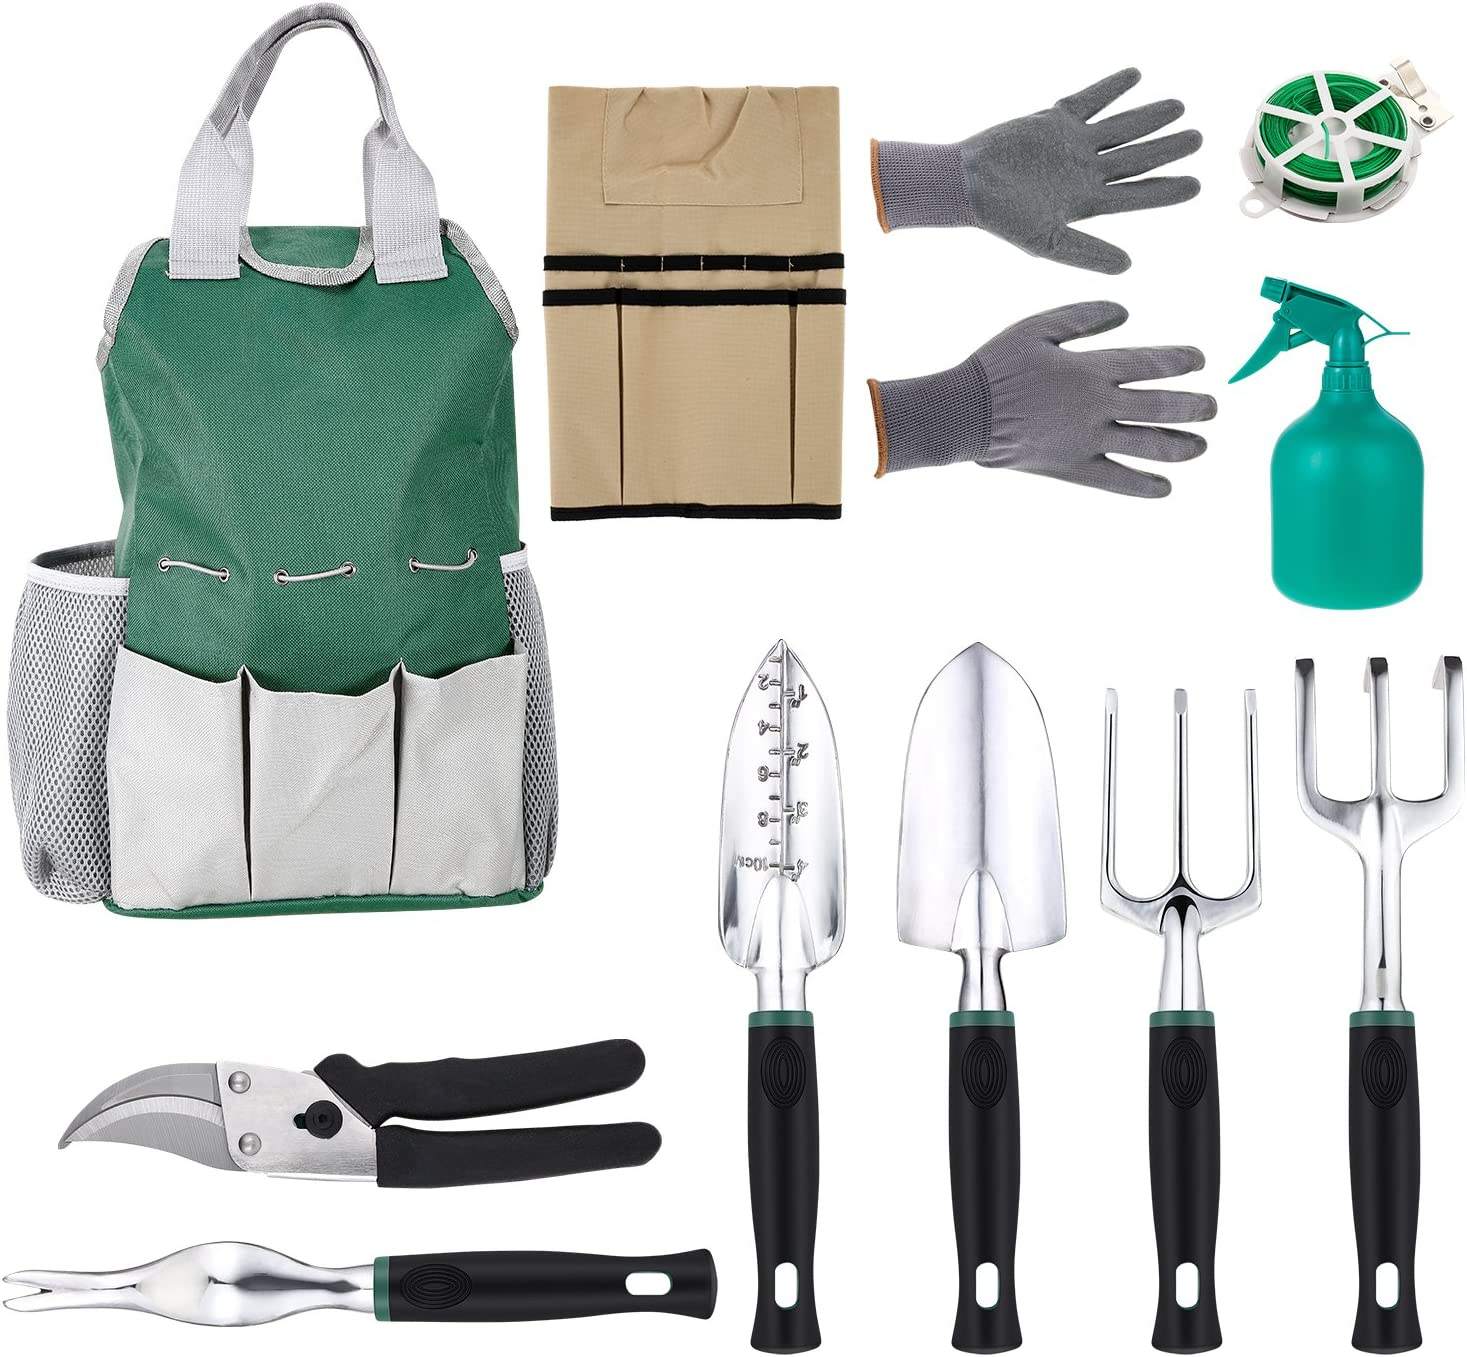 11 Piece Garden Tool Sets Gardening Tools Including Tool Organiser Bag,Apron,6 x Gardening Tools,Cotton Gloves and Bind Line 81WEY-KwmYL